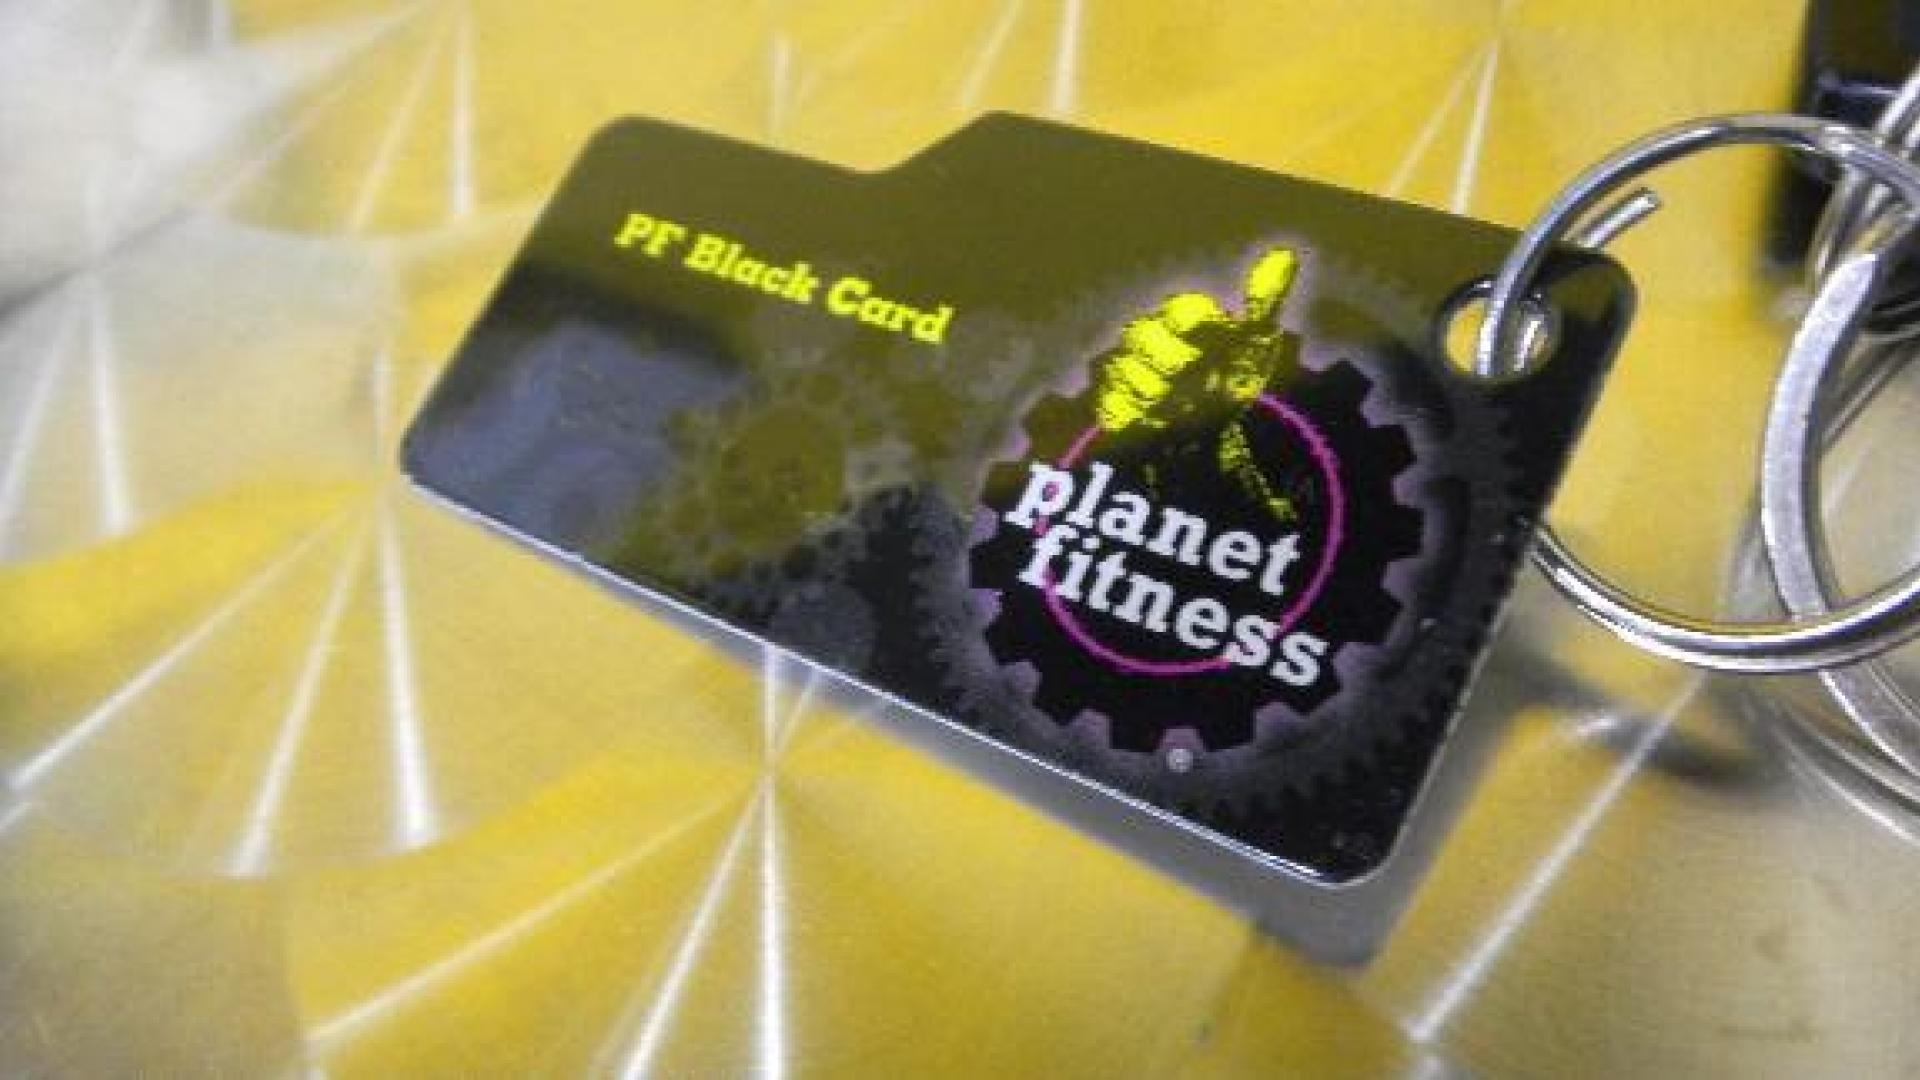 Gym in Dedham MA  695 Providence Hwy  Planet Fitness